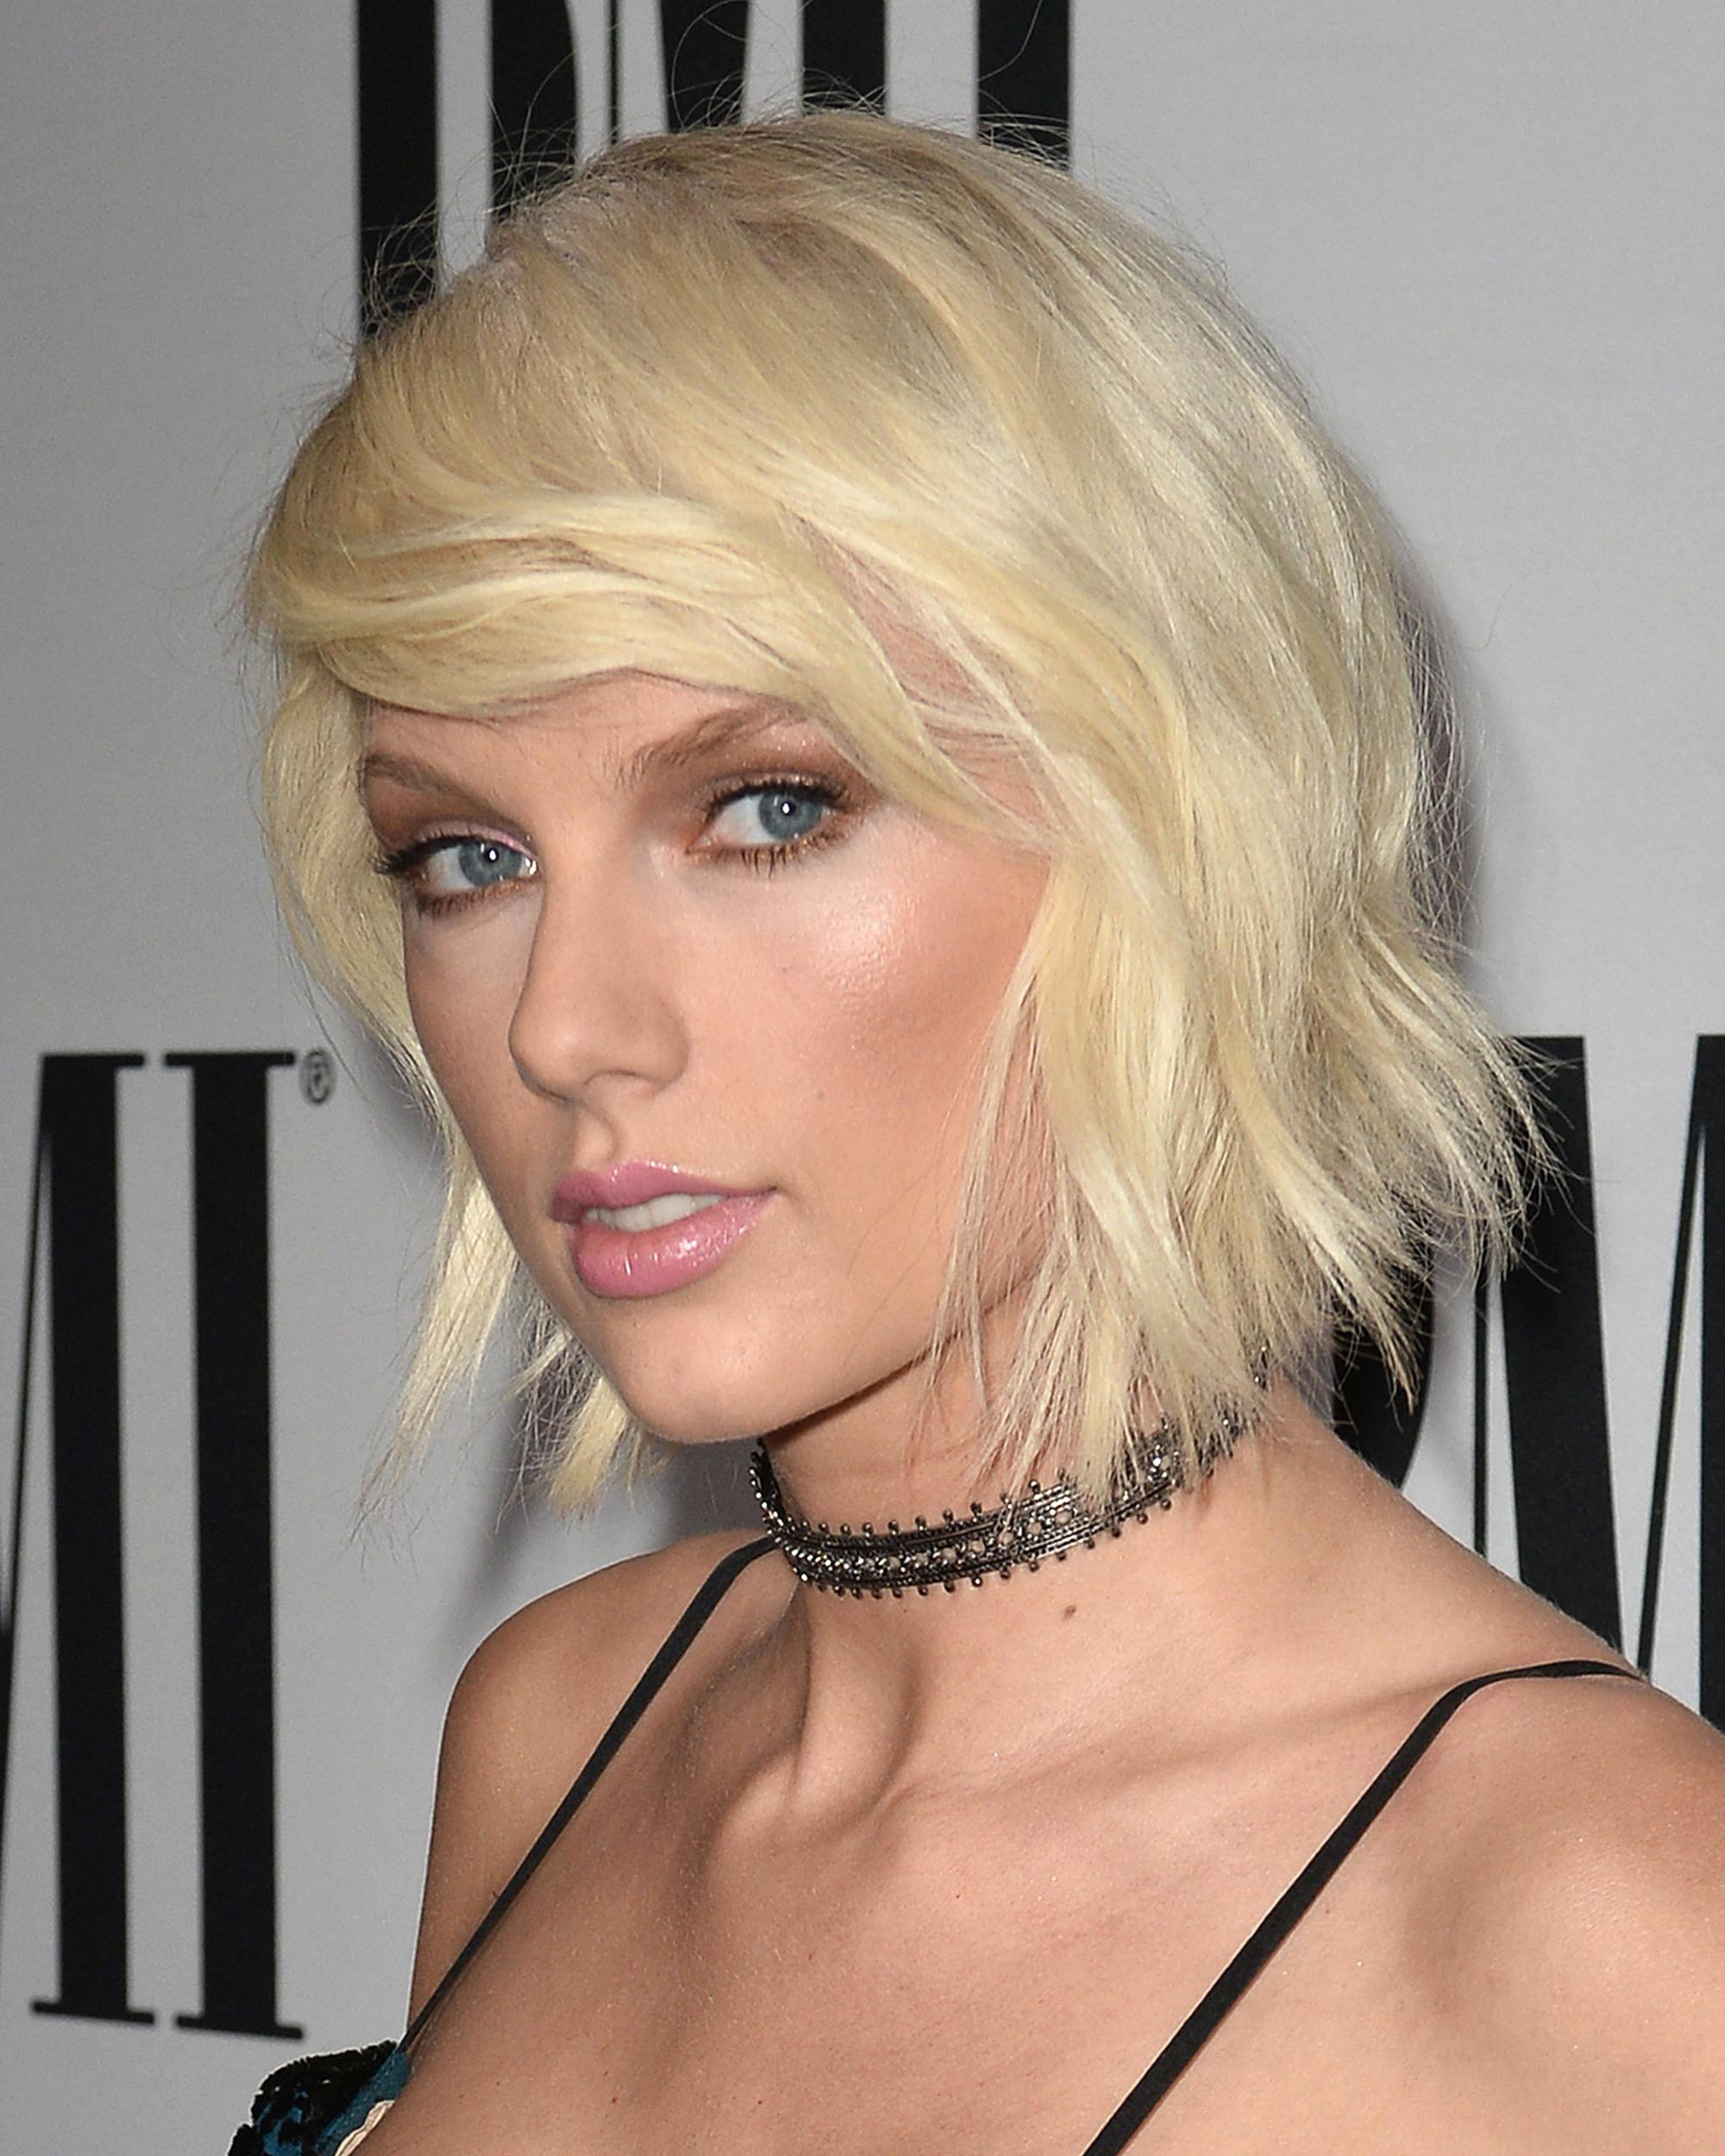 taylor swift with platinum blonde hair styled in a choppy bob with side bangs